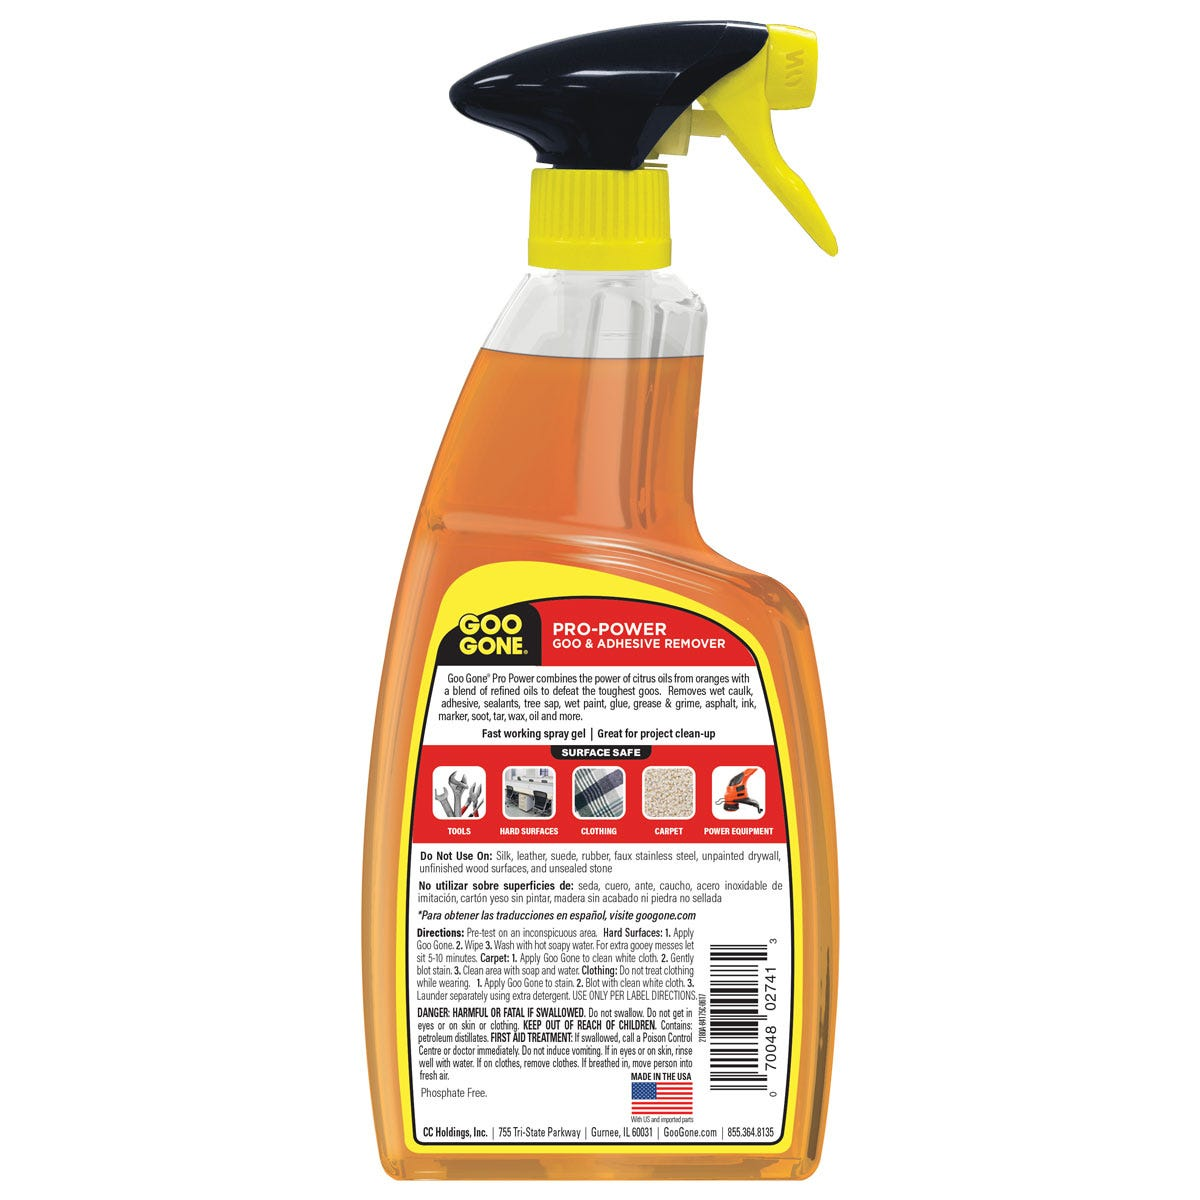 Pro Power Spray Gel back label